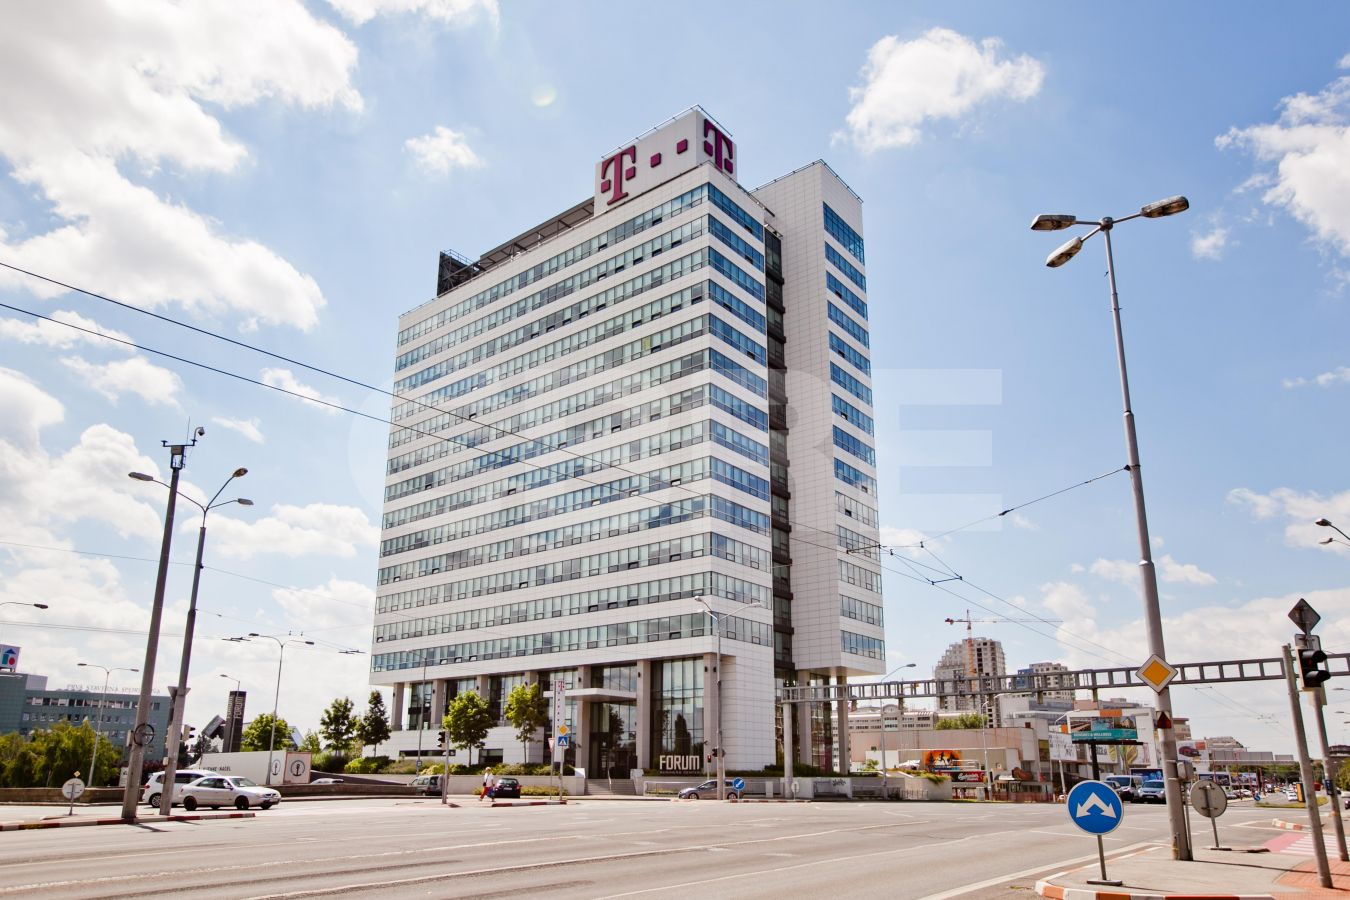 Forum BC, Bratislava - Ružinov | Offices for rent by CBRE | 1